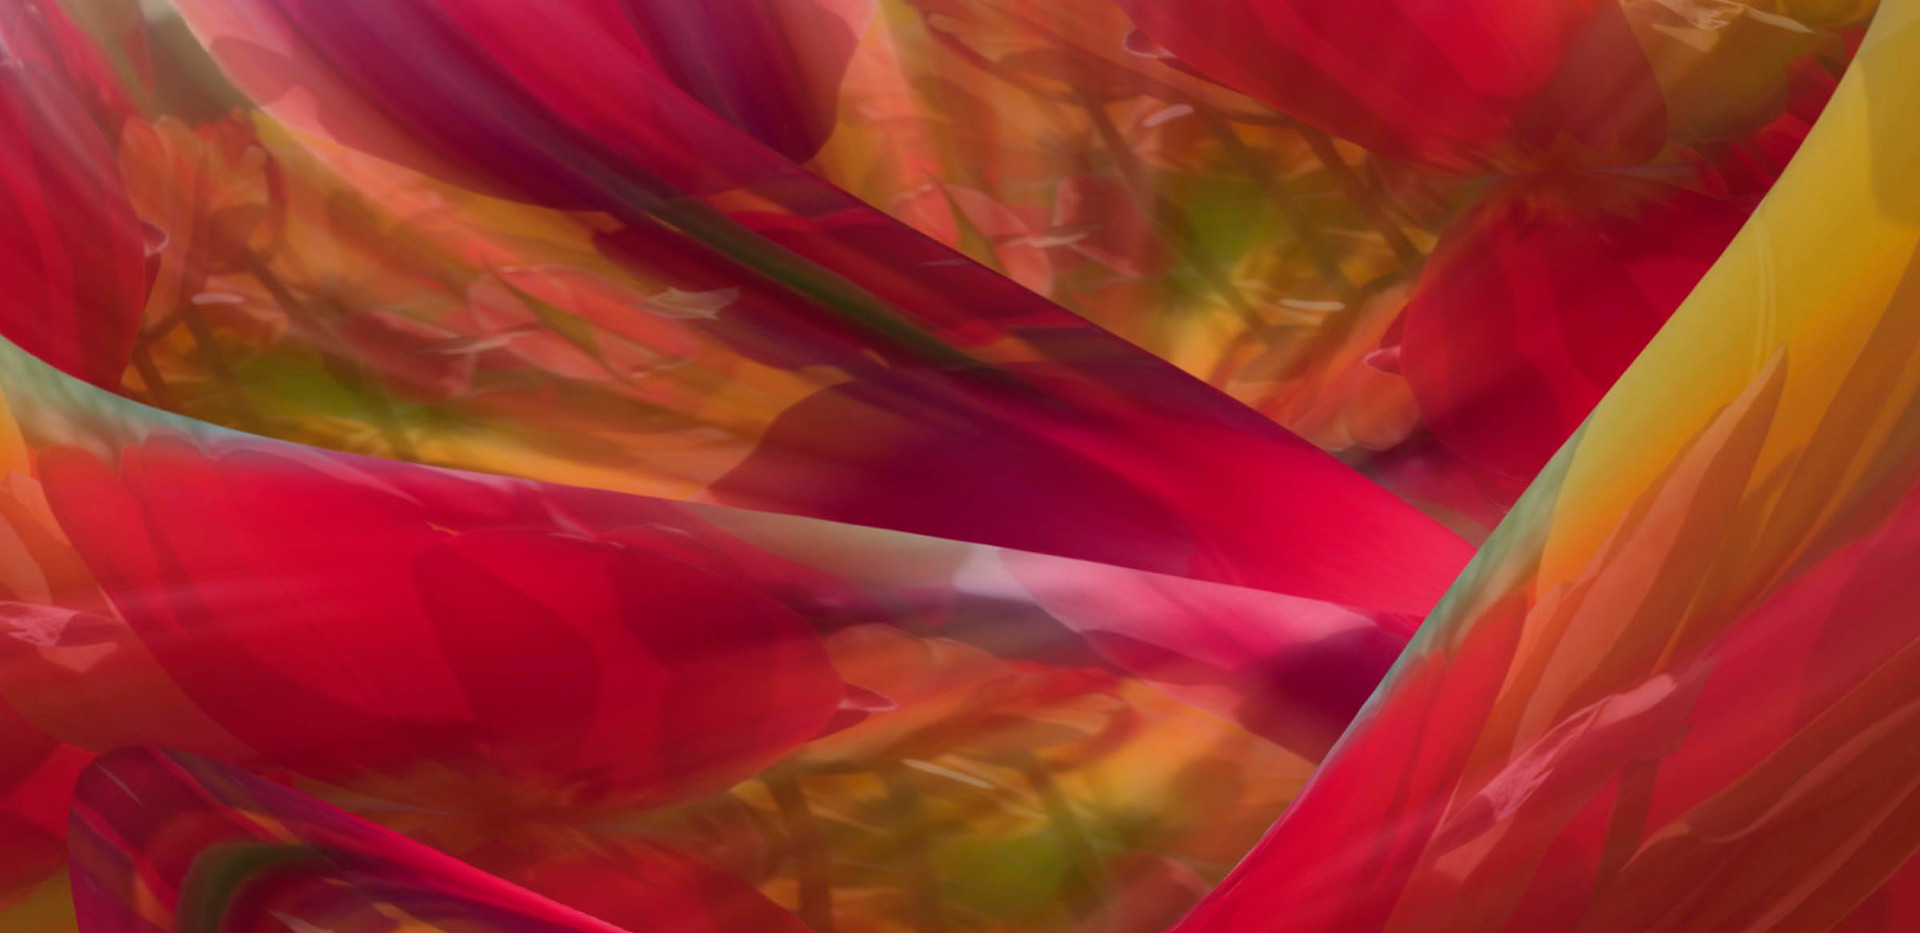 Tulips in Abstract